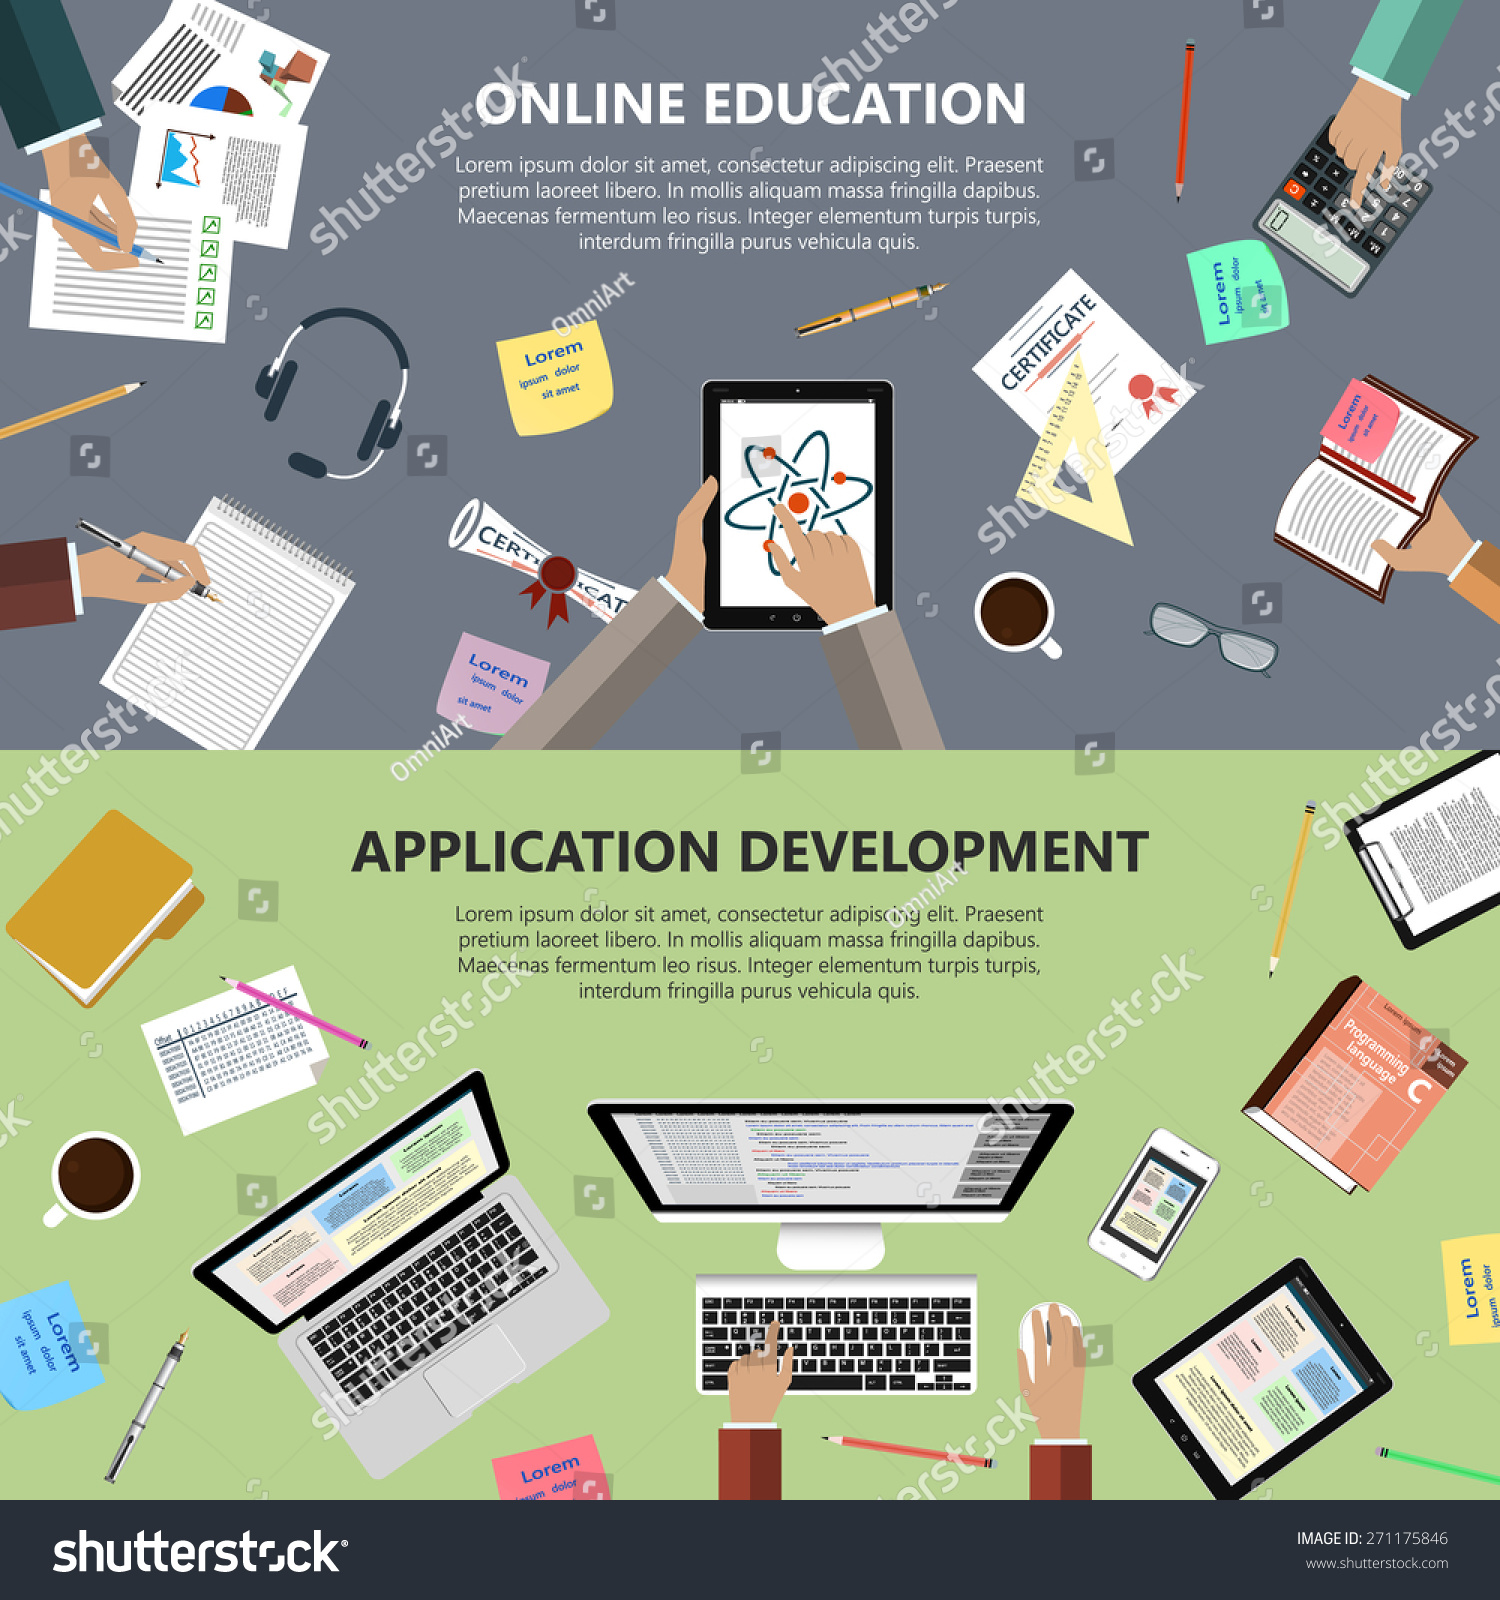 Modern Flat Design Online Education And App Development Concept For E Business Web Sites